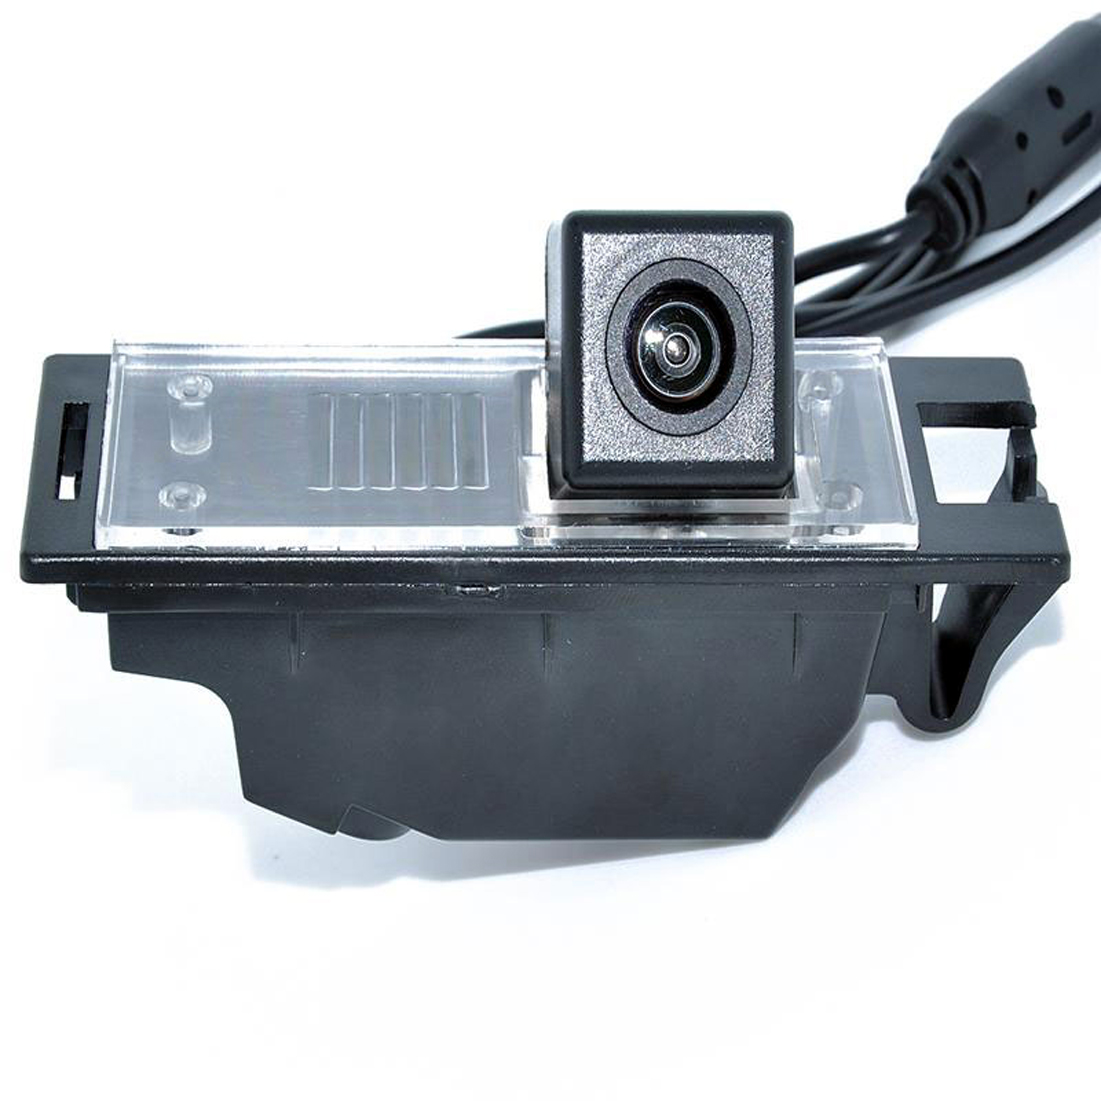 HD CCD Car Rear View Camera Reverse backup Parking Camera For Hyundai IX35 with wide viewing angle спот marksojd